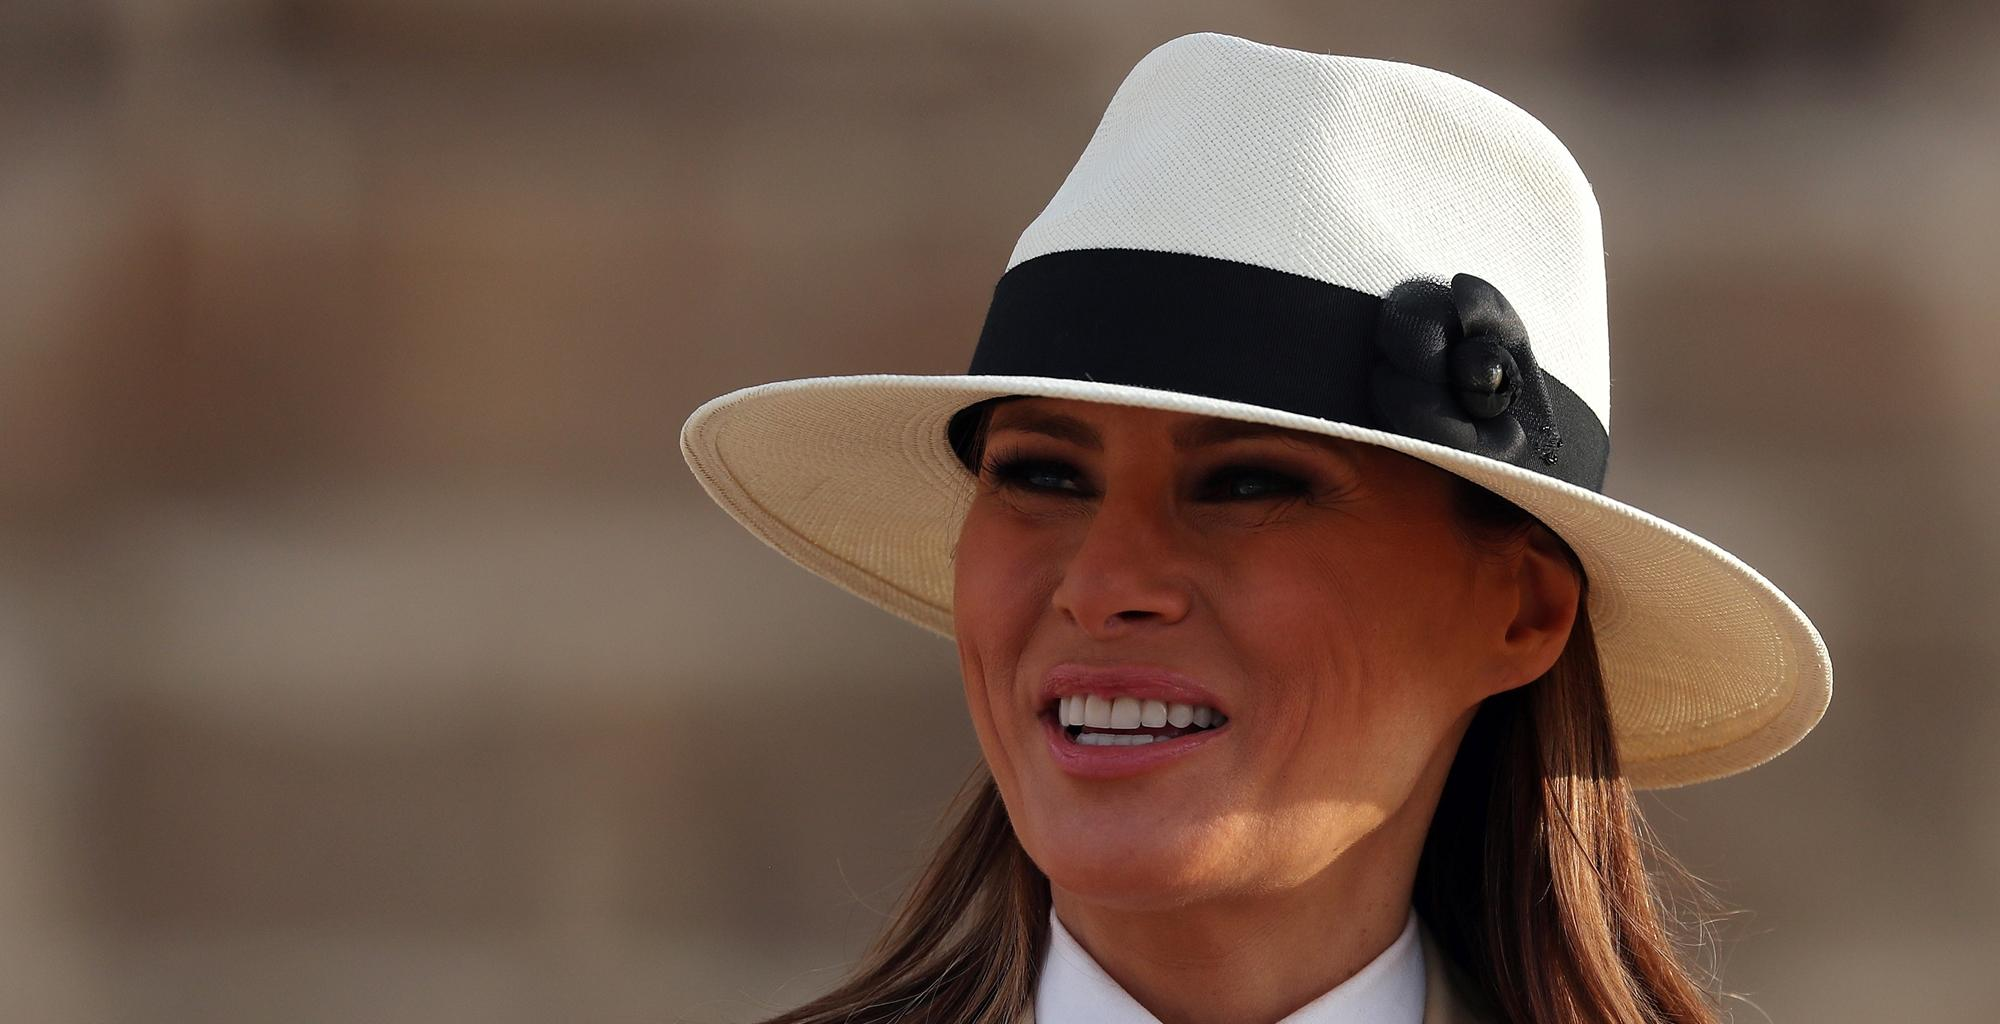 Melania Trump Has Decided To Change Her Style In New Photos, The Donald's Supporters React